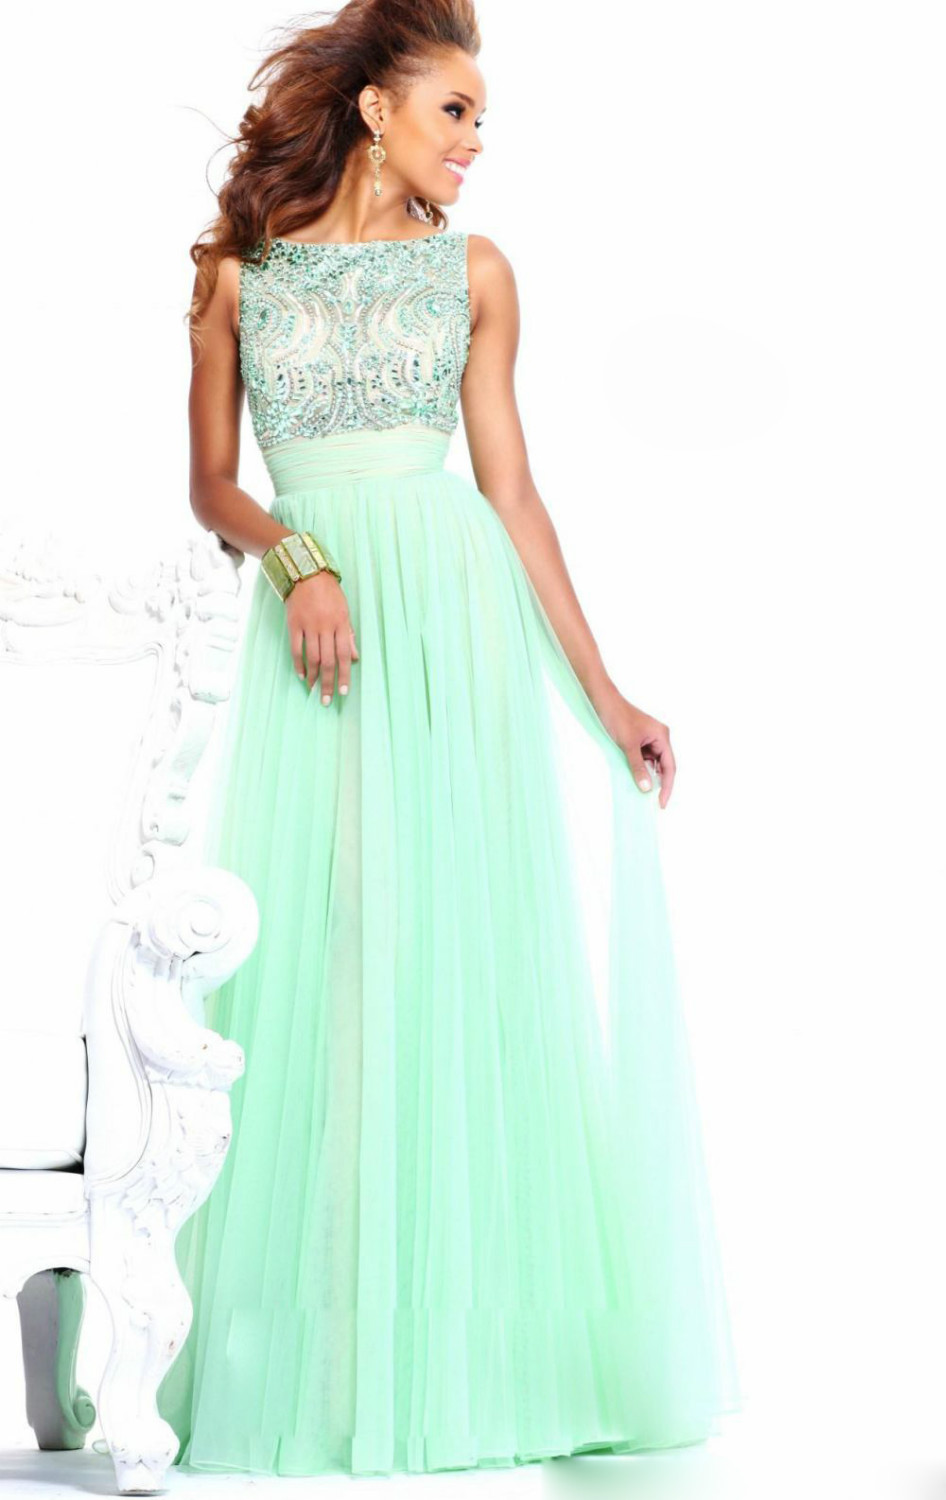 4f820973fe0 Prom Dresses Under 100 Dollars - Dress Foto and Picture